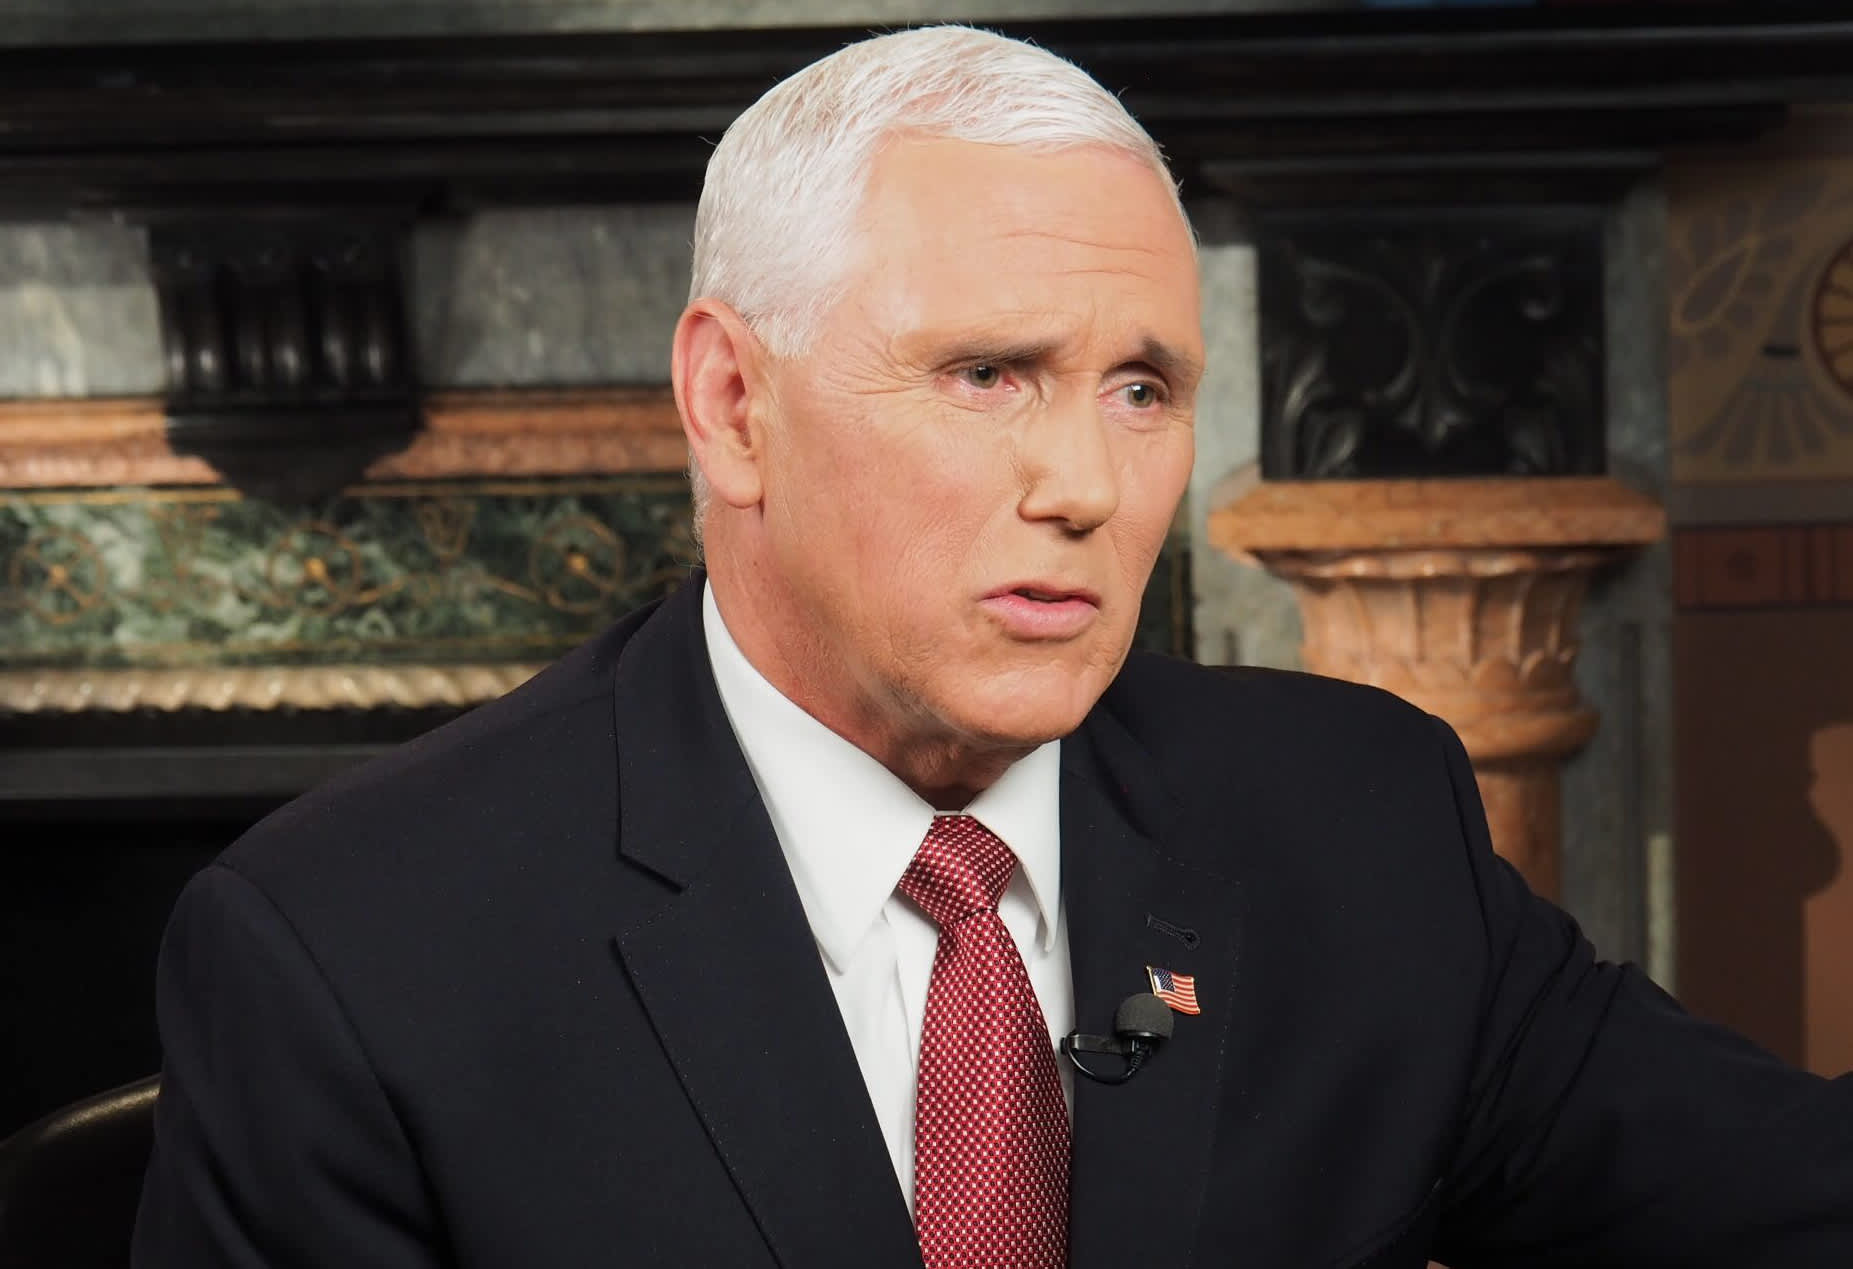 Mike Pence accuses centrist Joe Biden of 'advocating a socialist agenda' like other 2020 Democrats